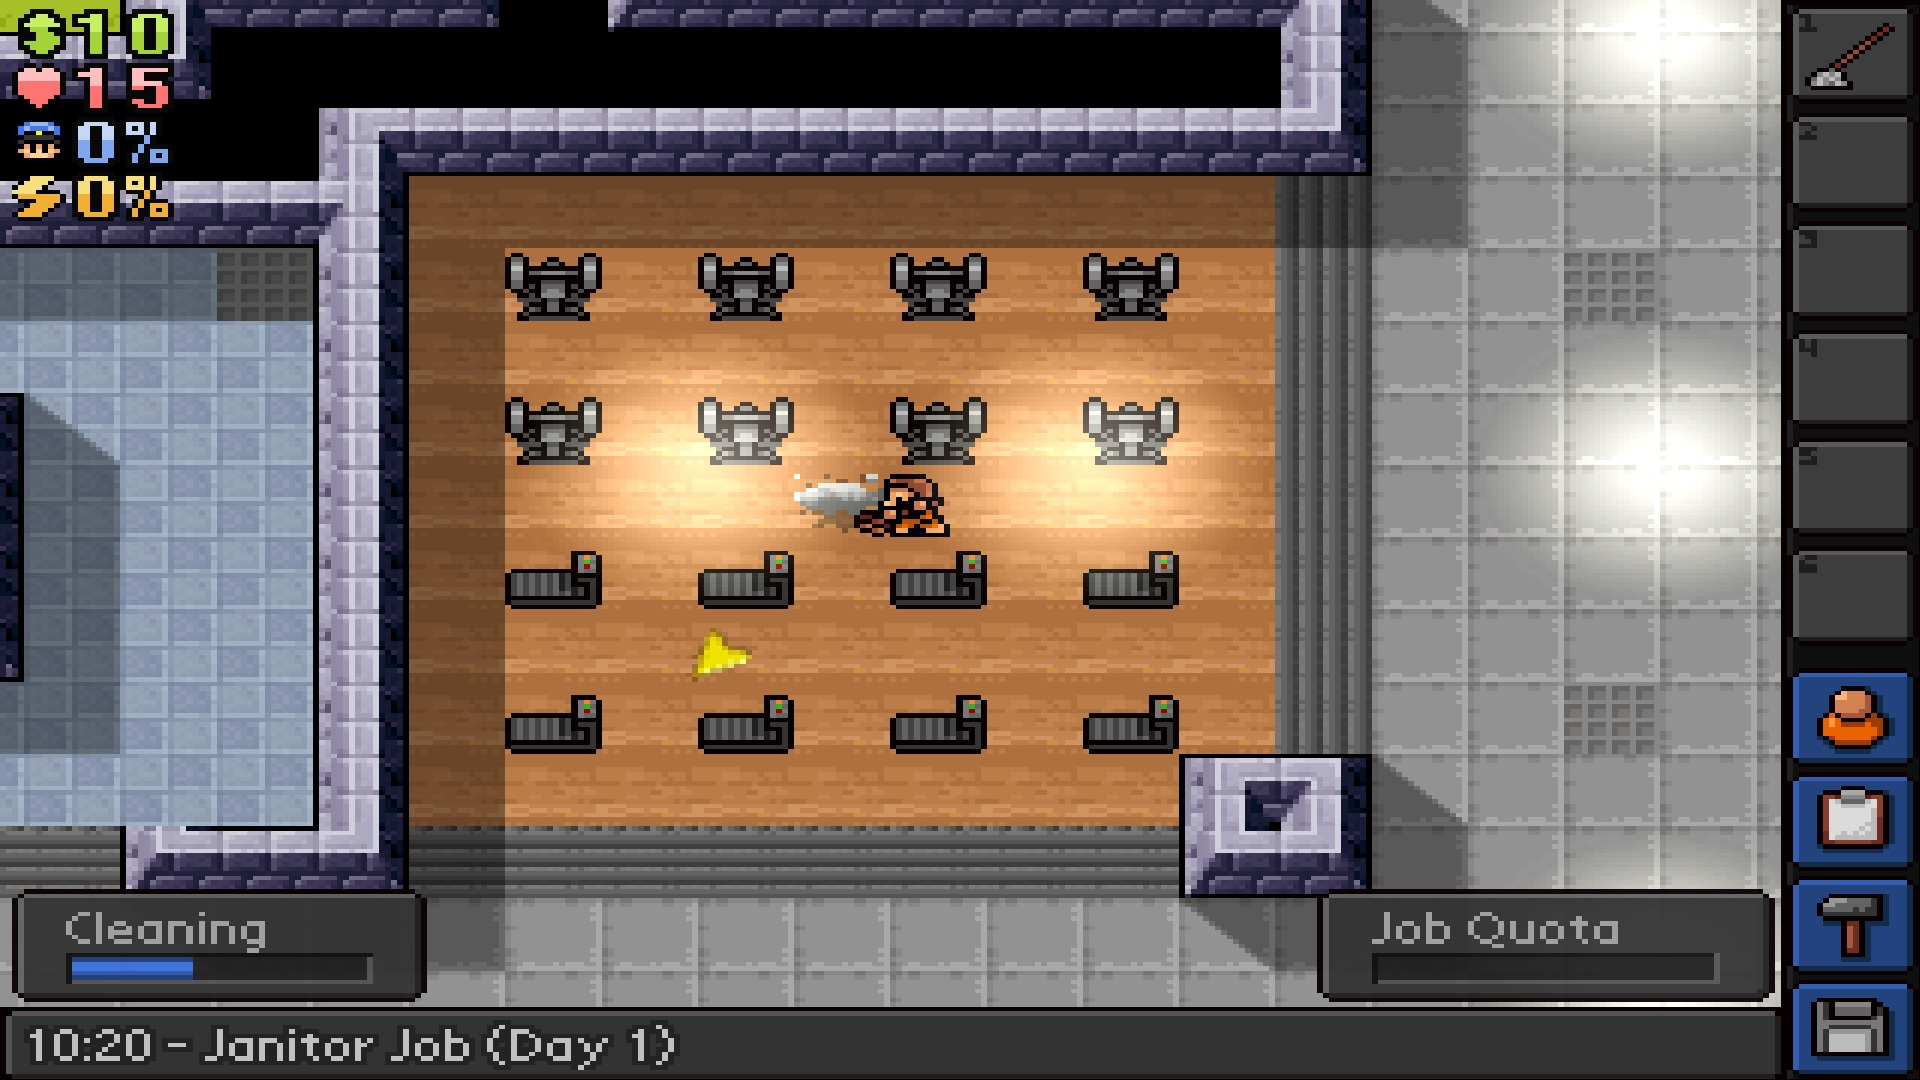 The Escapists - Fhurst Peak Correctional Facility [Online Game Code] by Team17 (Image #9)